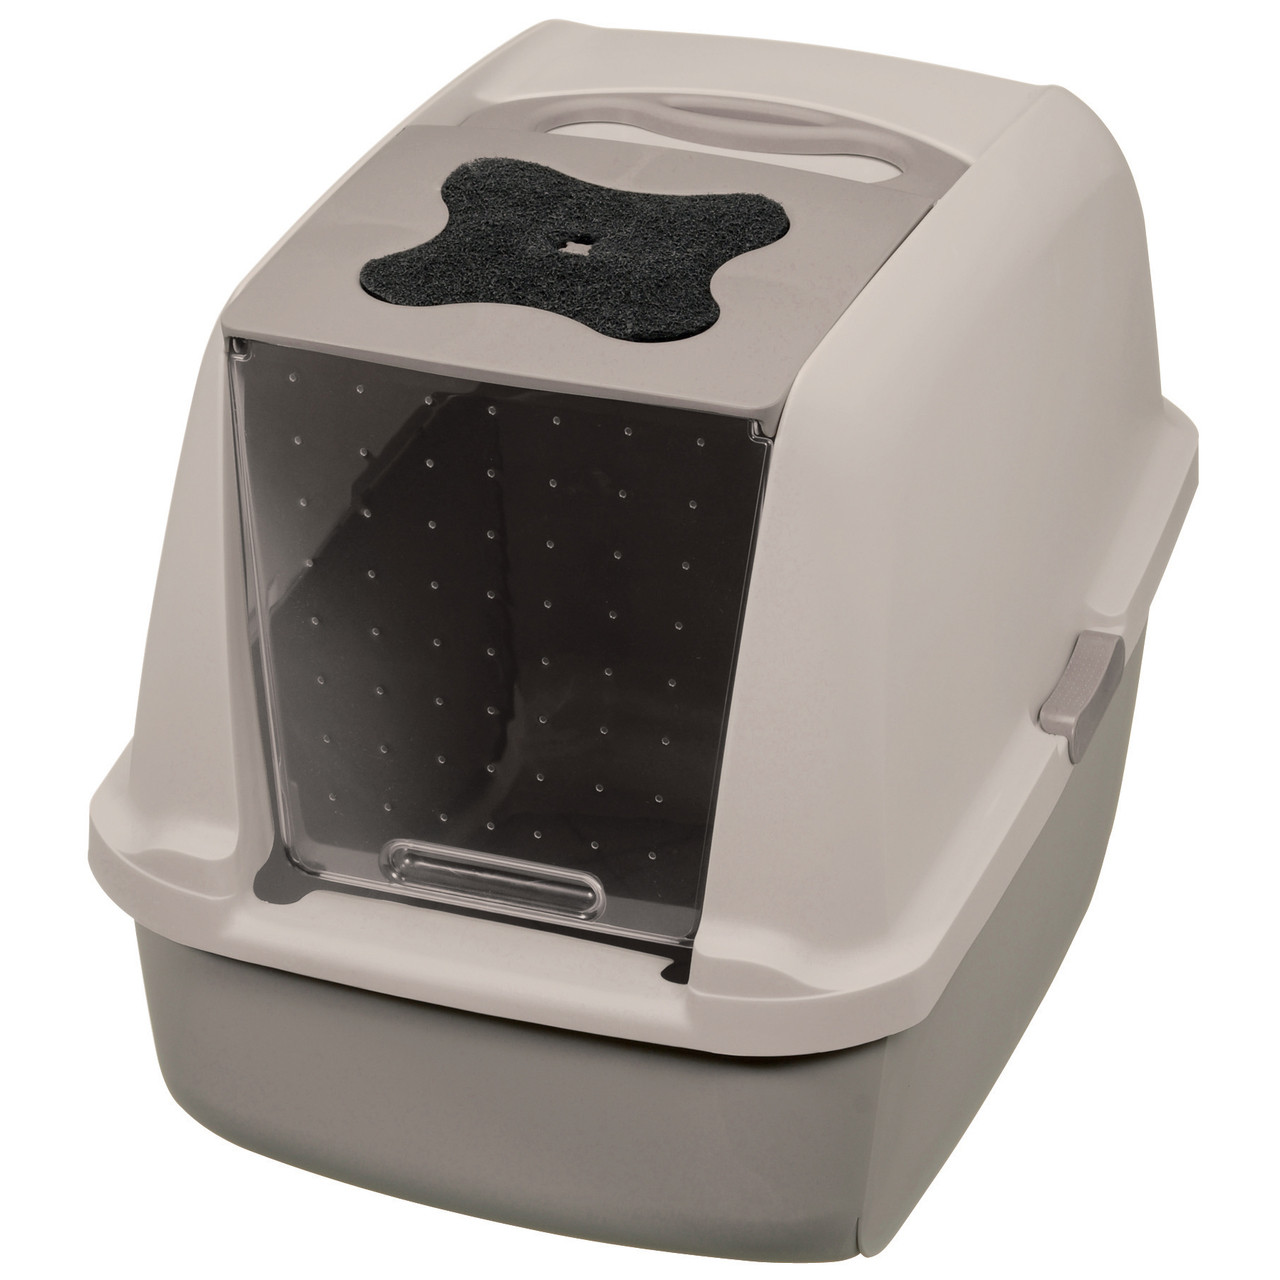 Catit Hooded Cat Pan Litter Box